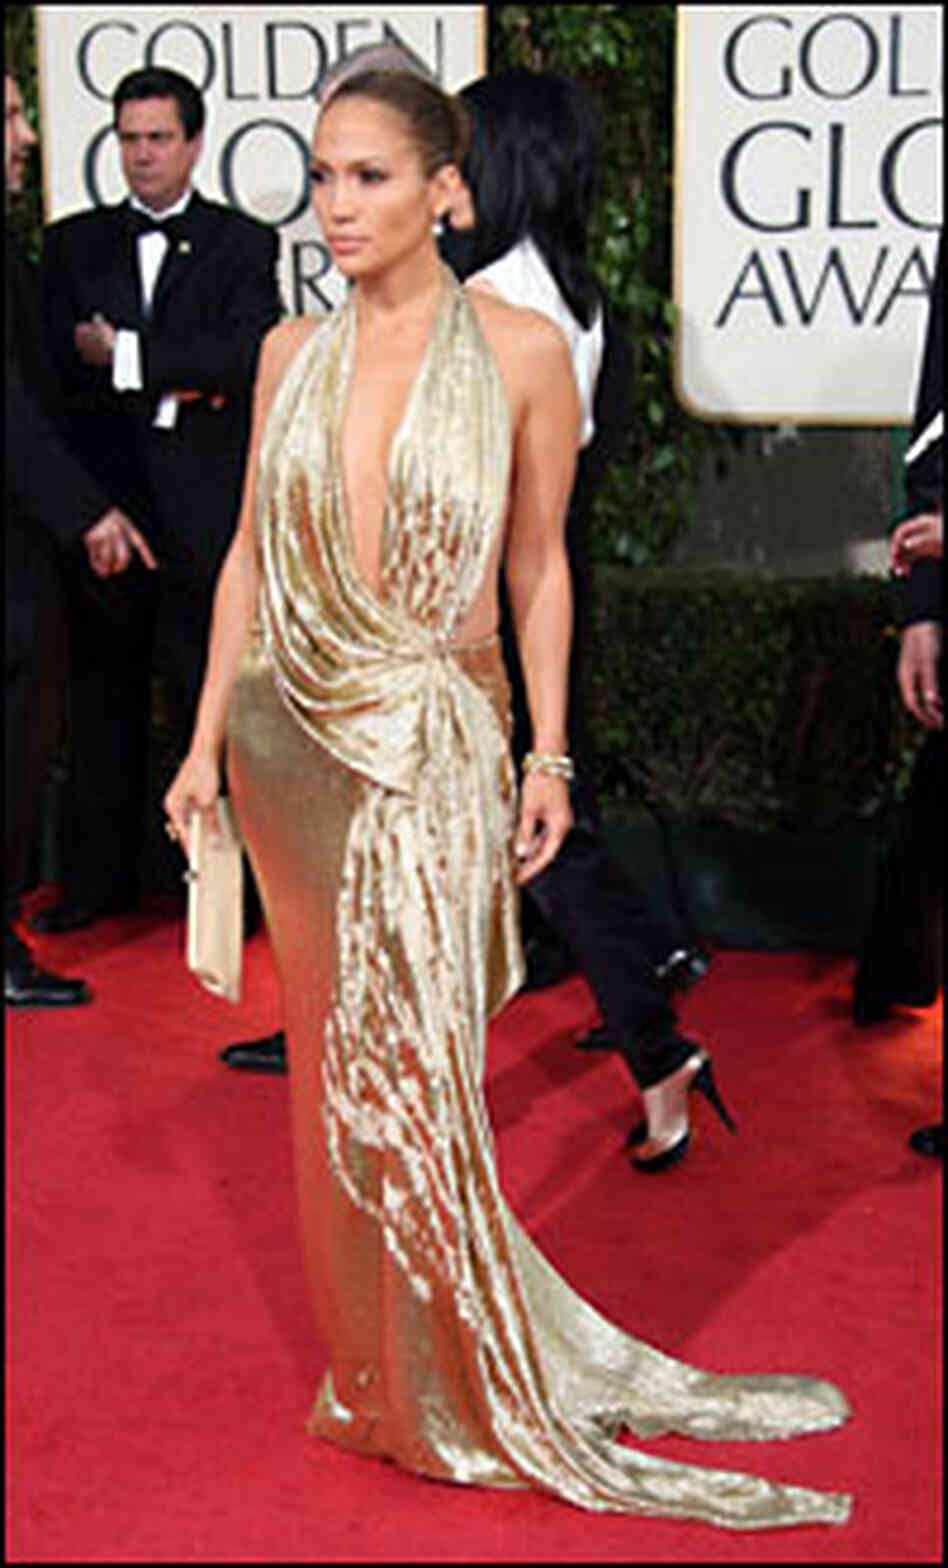 Jennifer Lopez in a sparkling gold dress at the 2009 Golden Globe awards